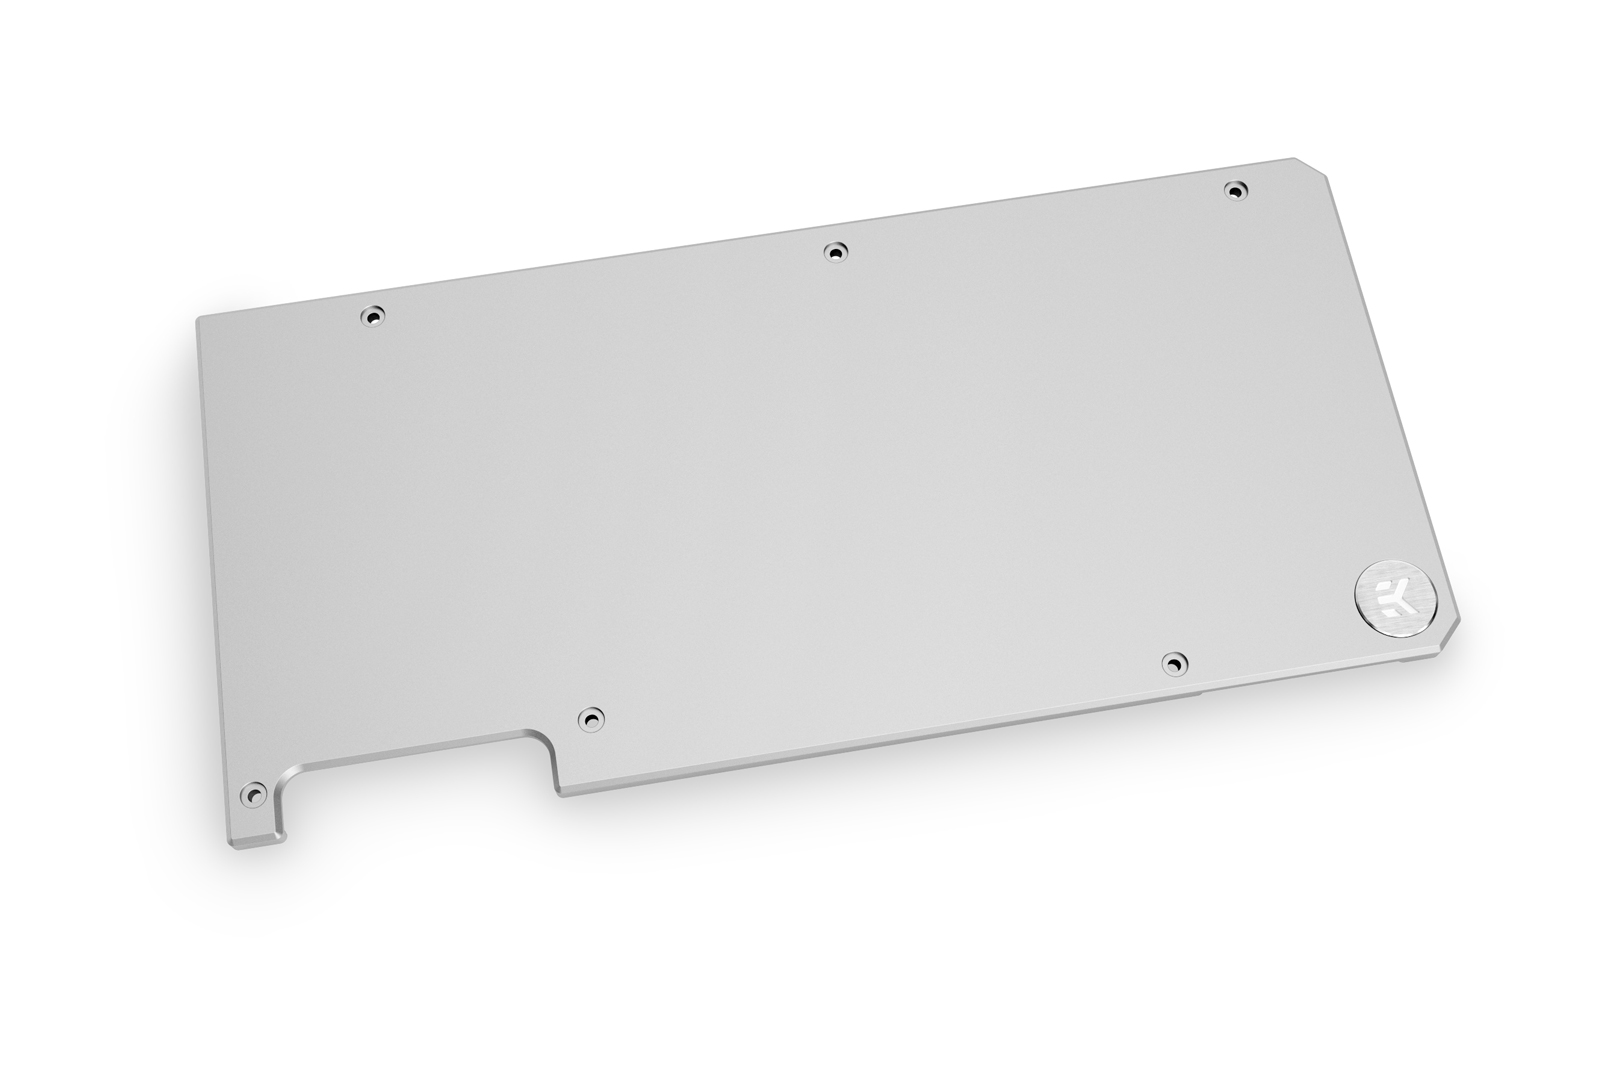 EK-Quantum-Vector-TUF-RTX-3080-3090_Backplate_Nickel_TOP